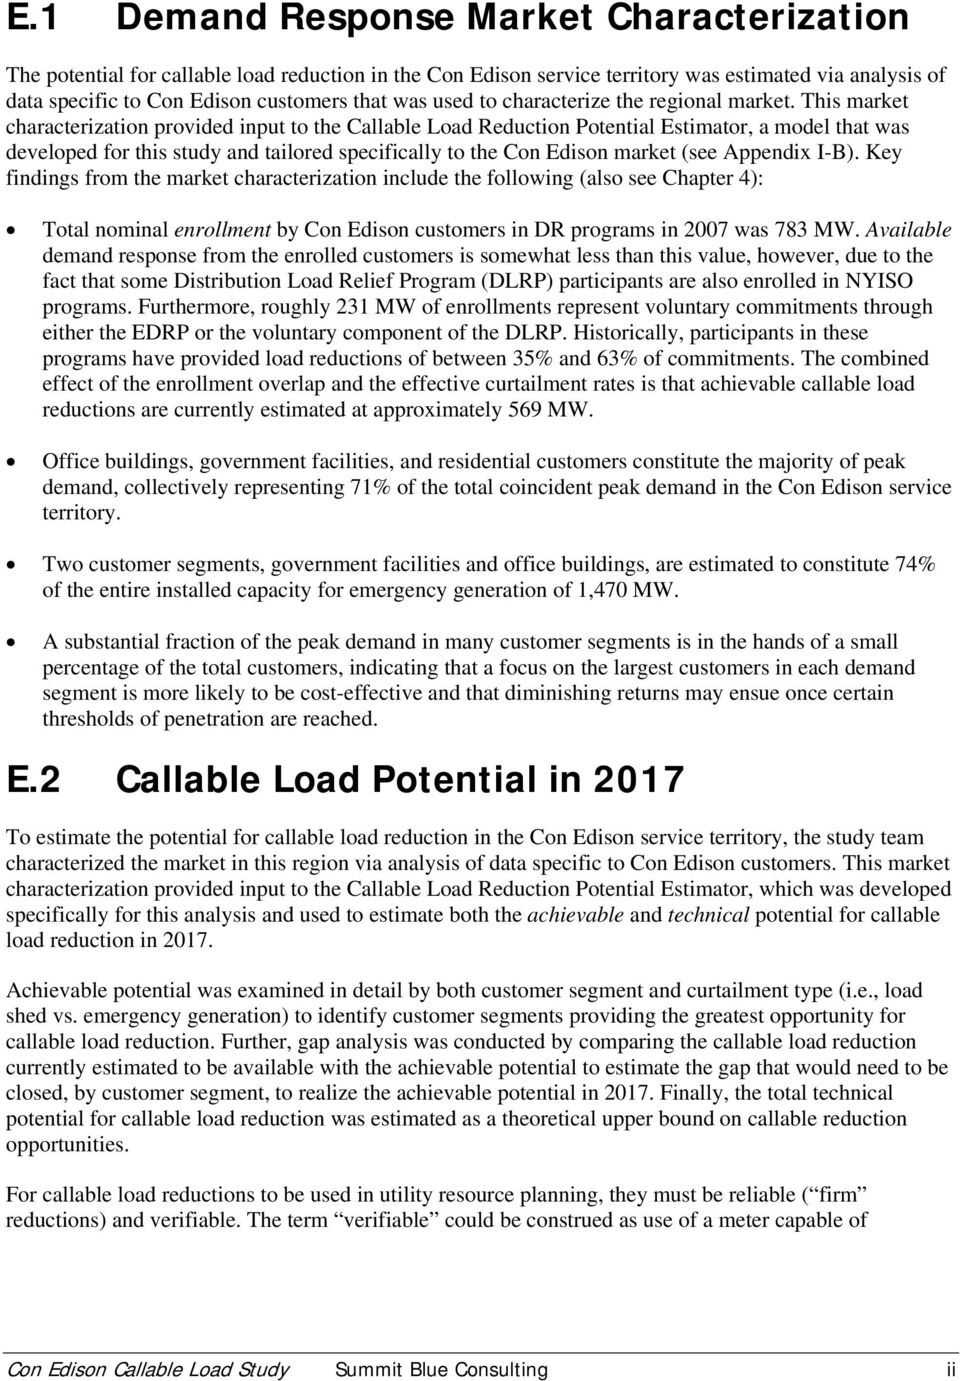 This market characterization provided input to the Callable Load Reduction Potential Estimator, a model that was developed for this study and tailored specifically to the Con Edison market (see